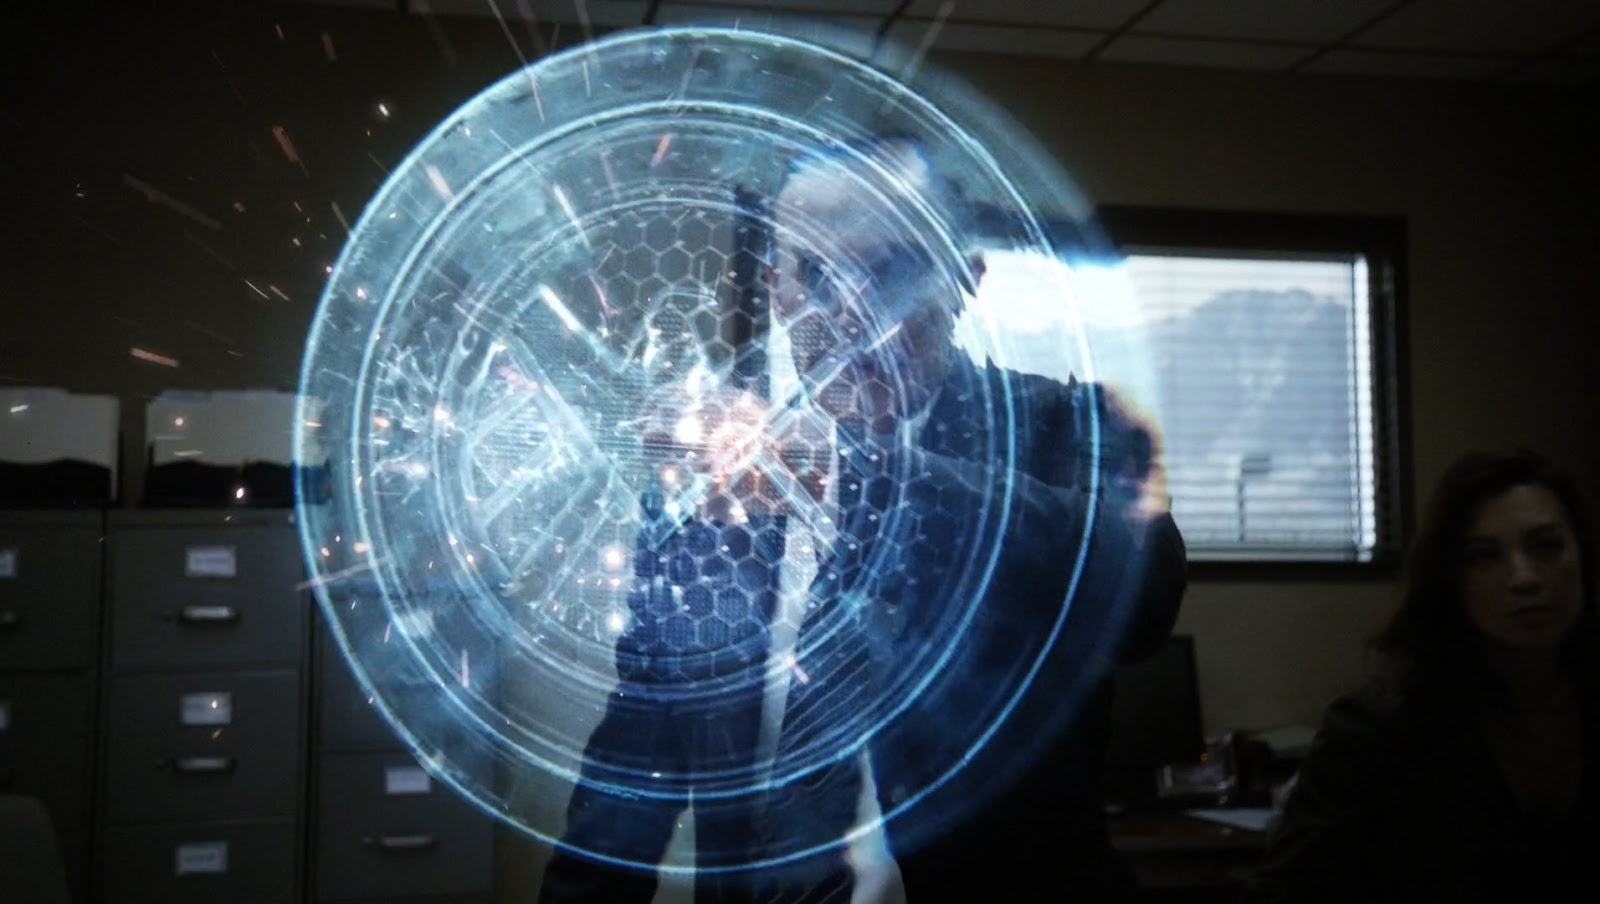 So yeah, spoiler alert. Coulson has a robot hand and it has all sorts of awesome shit. If you aren't watching Agents of Shield... check it out.